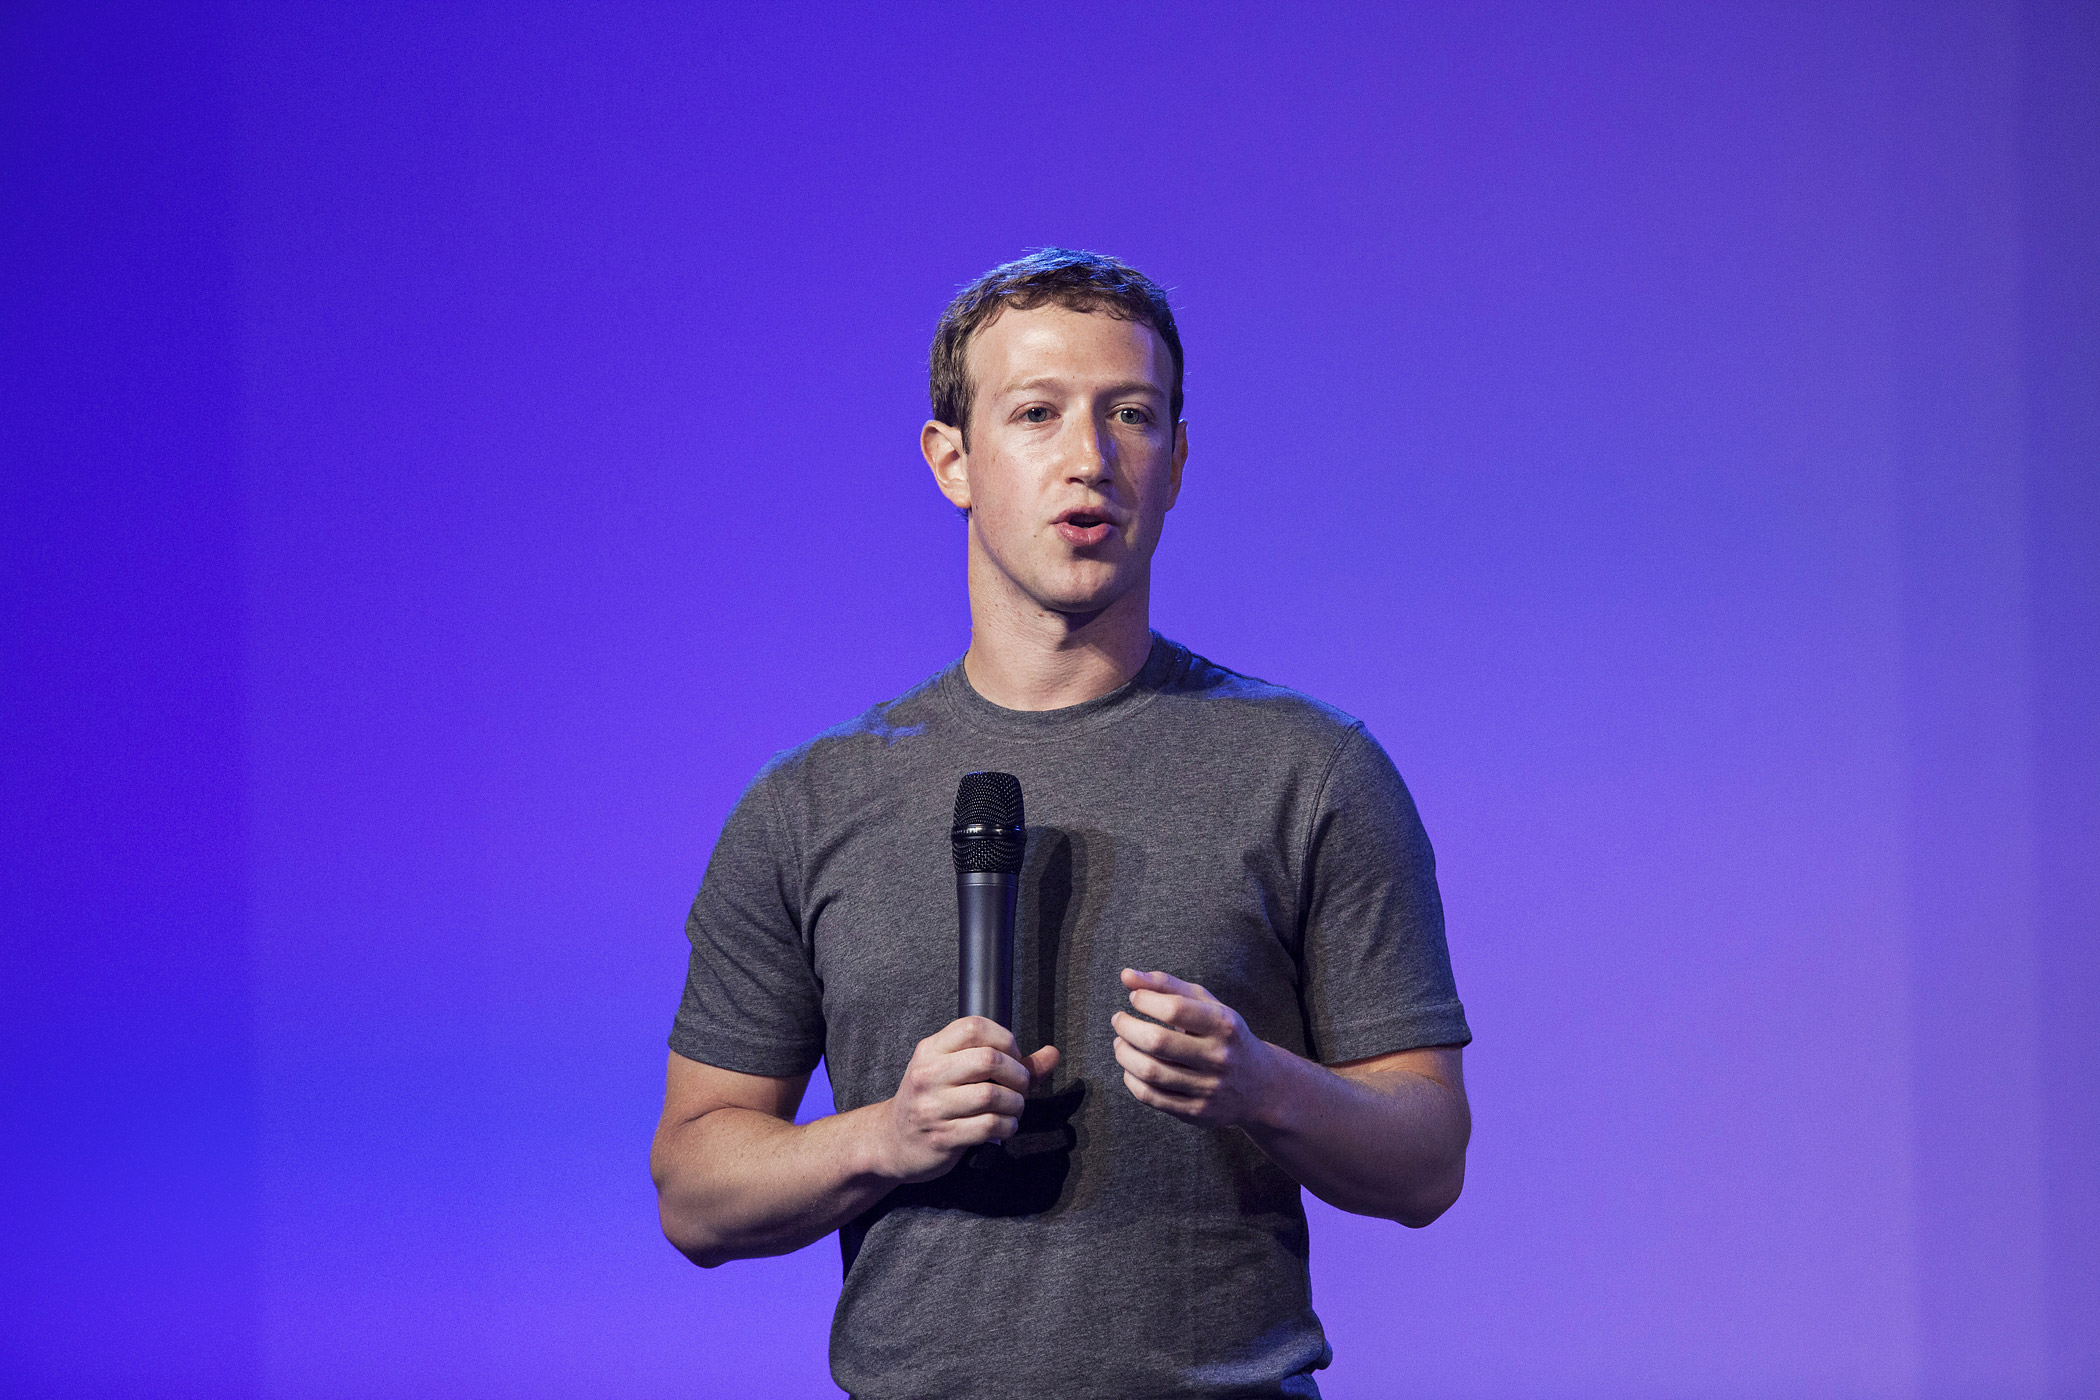 Facebook Chief Executive Officer Mark Zuckerberg Hosts Internet.org Summit